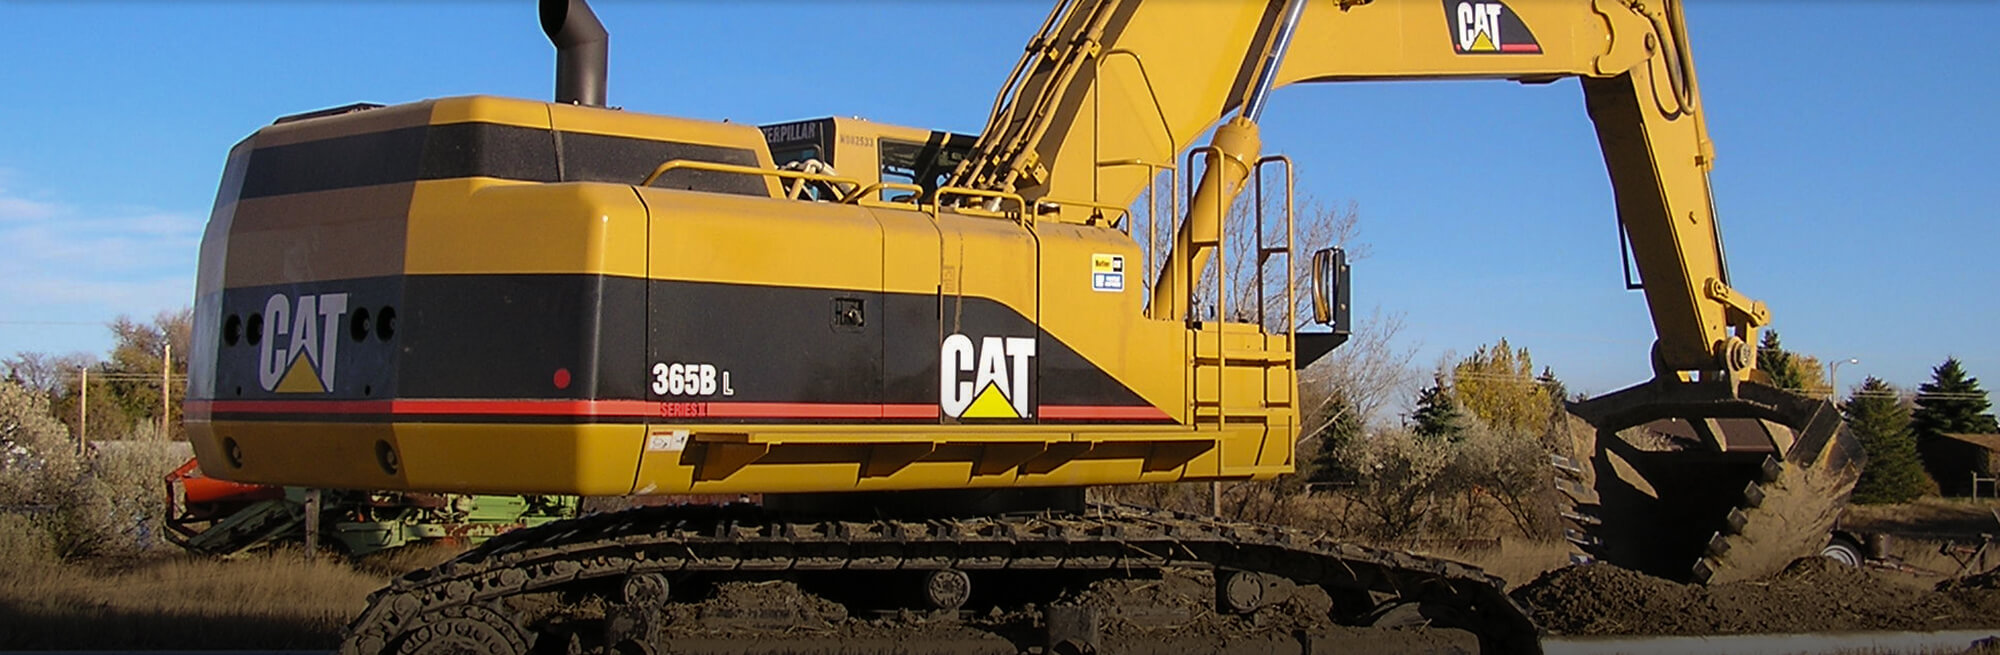 Large 365B CAT excavator at a rural jobsite